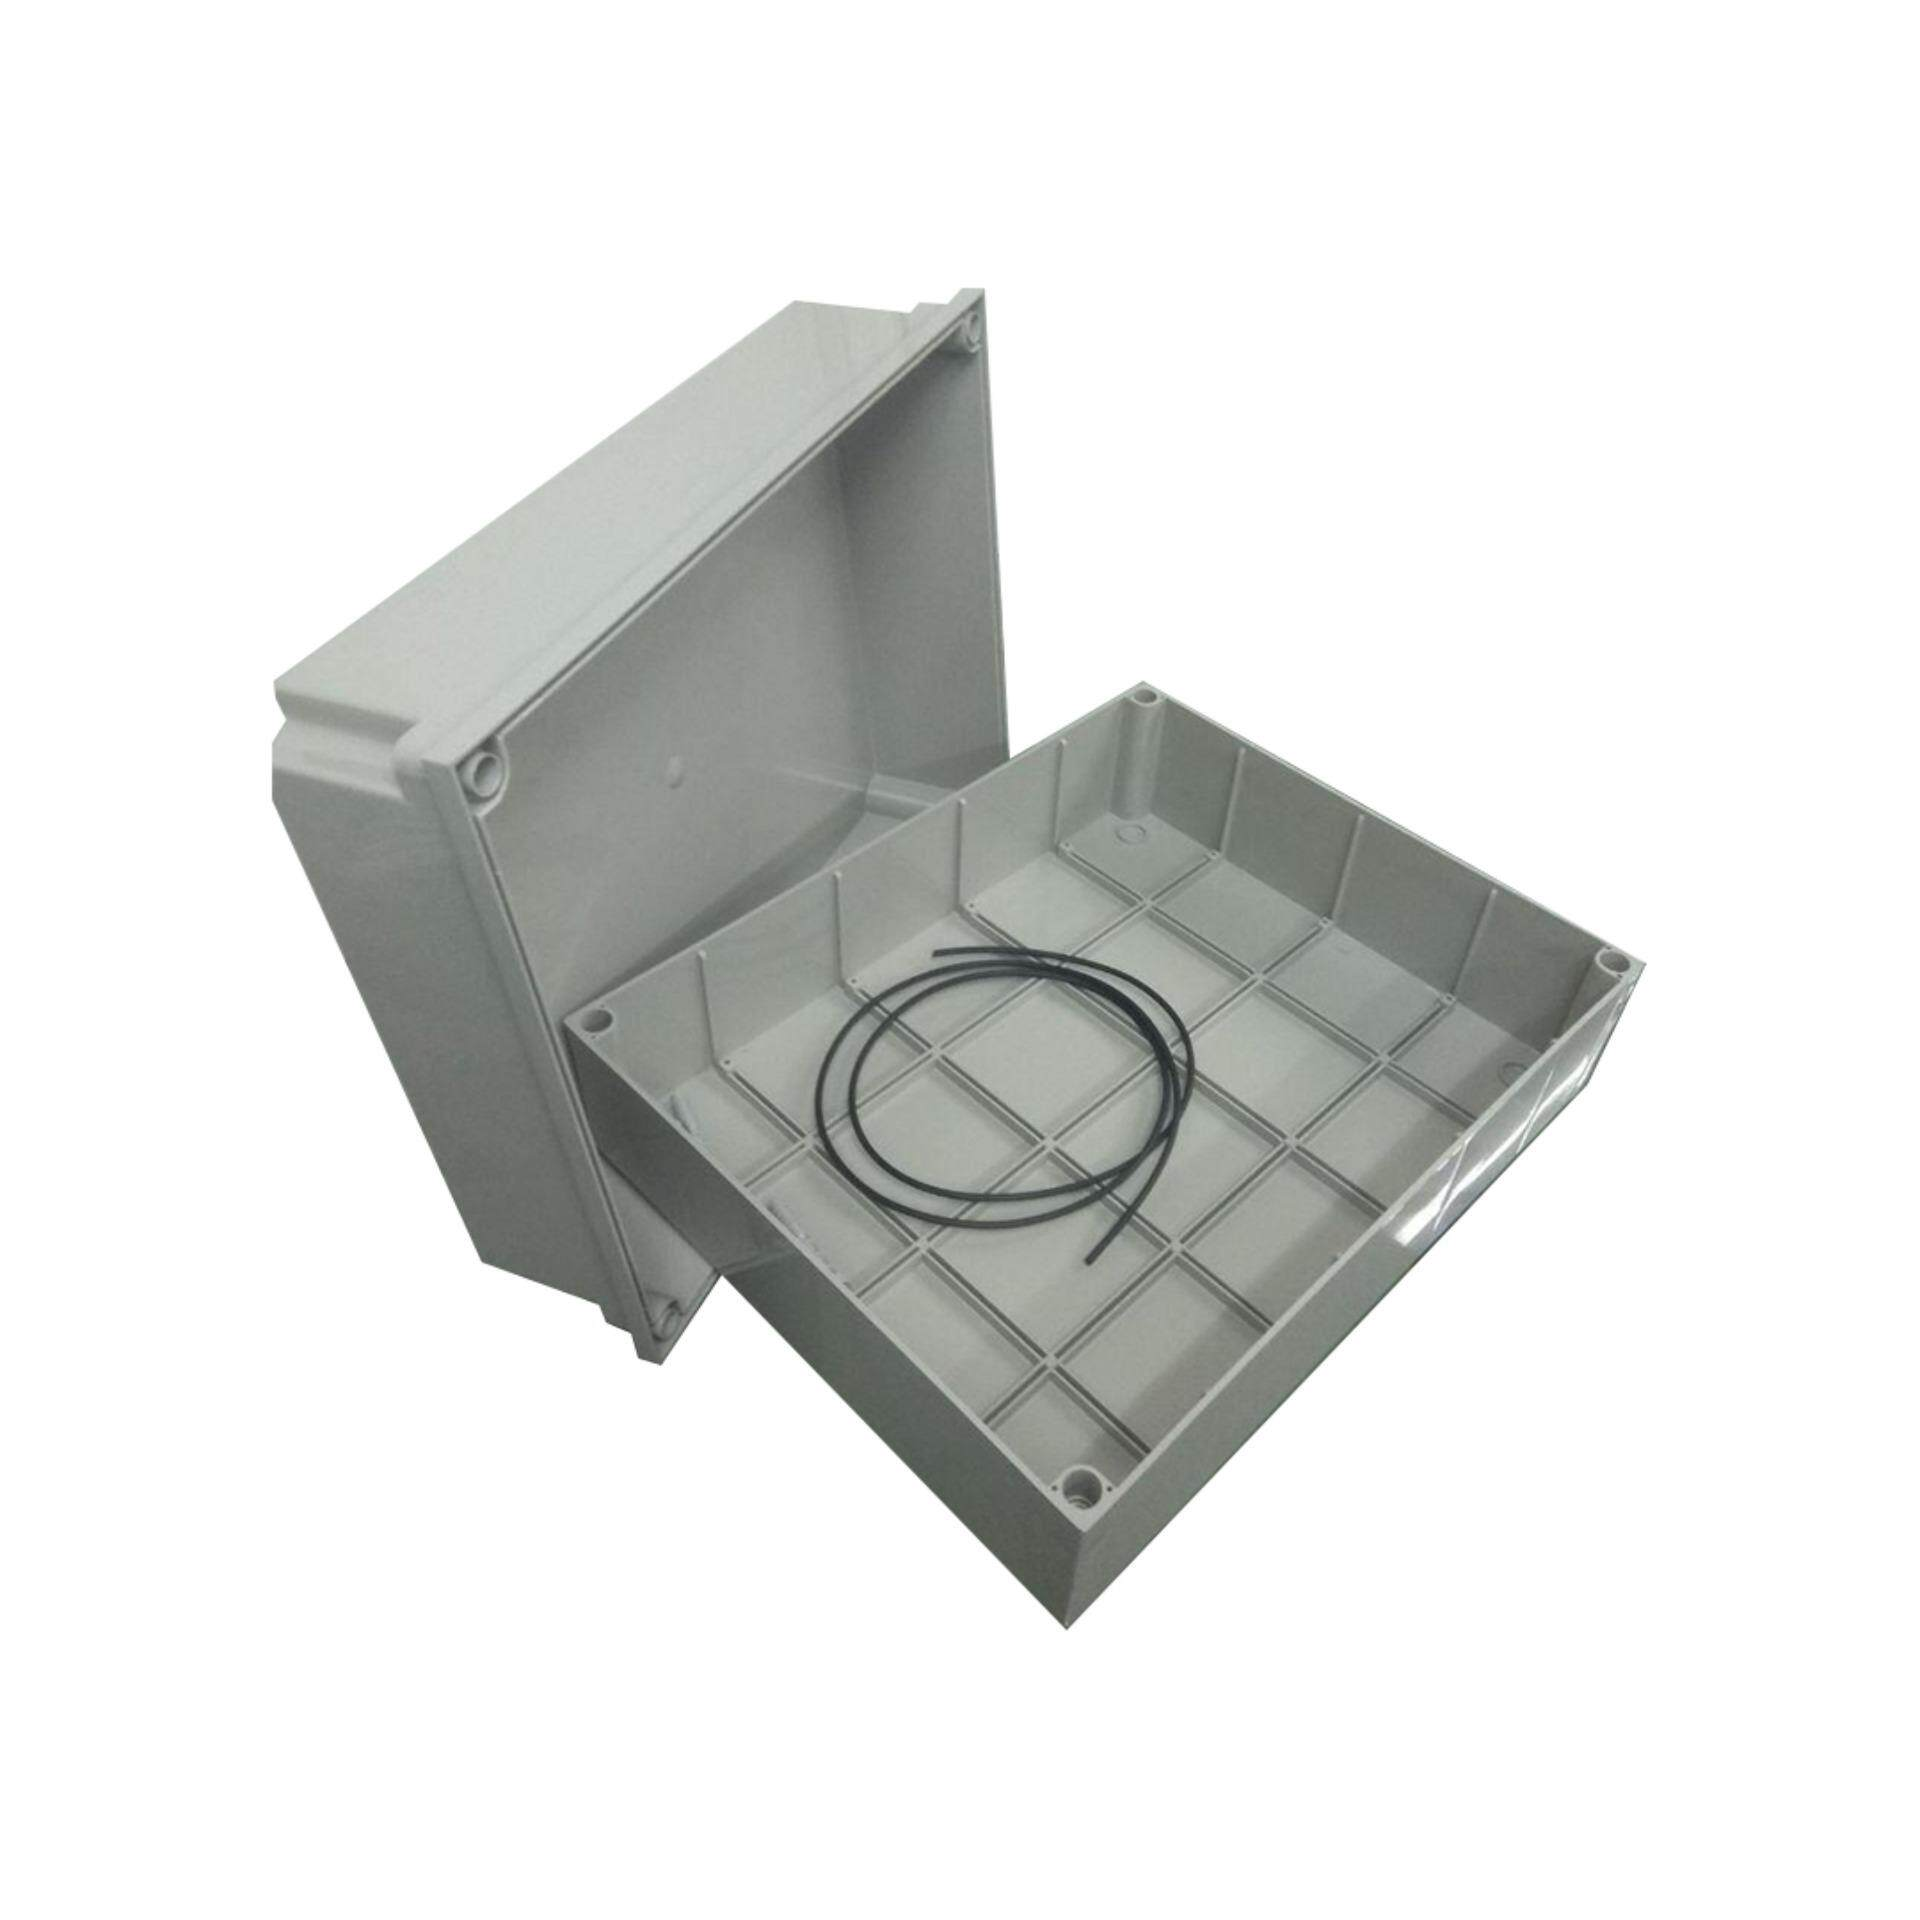 LittleThingy 12 Inches x 15 Inches (300 mm x 380 mm x 178 mm) Waterproof PVC Electric / Weatherproof Electronic Project Enclosure Junction Box / Case